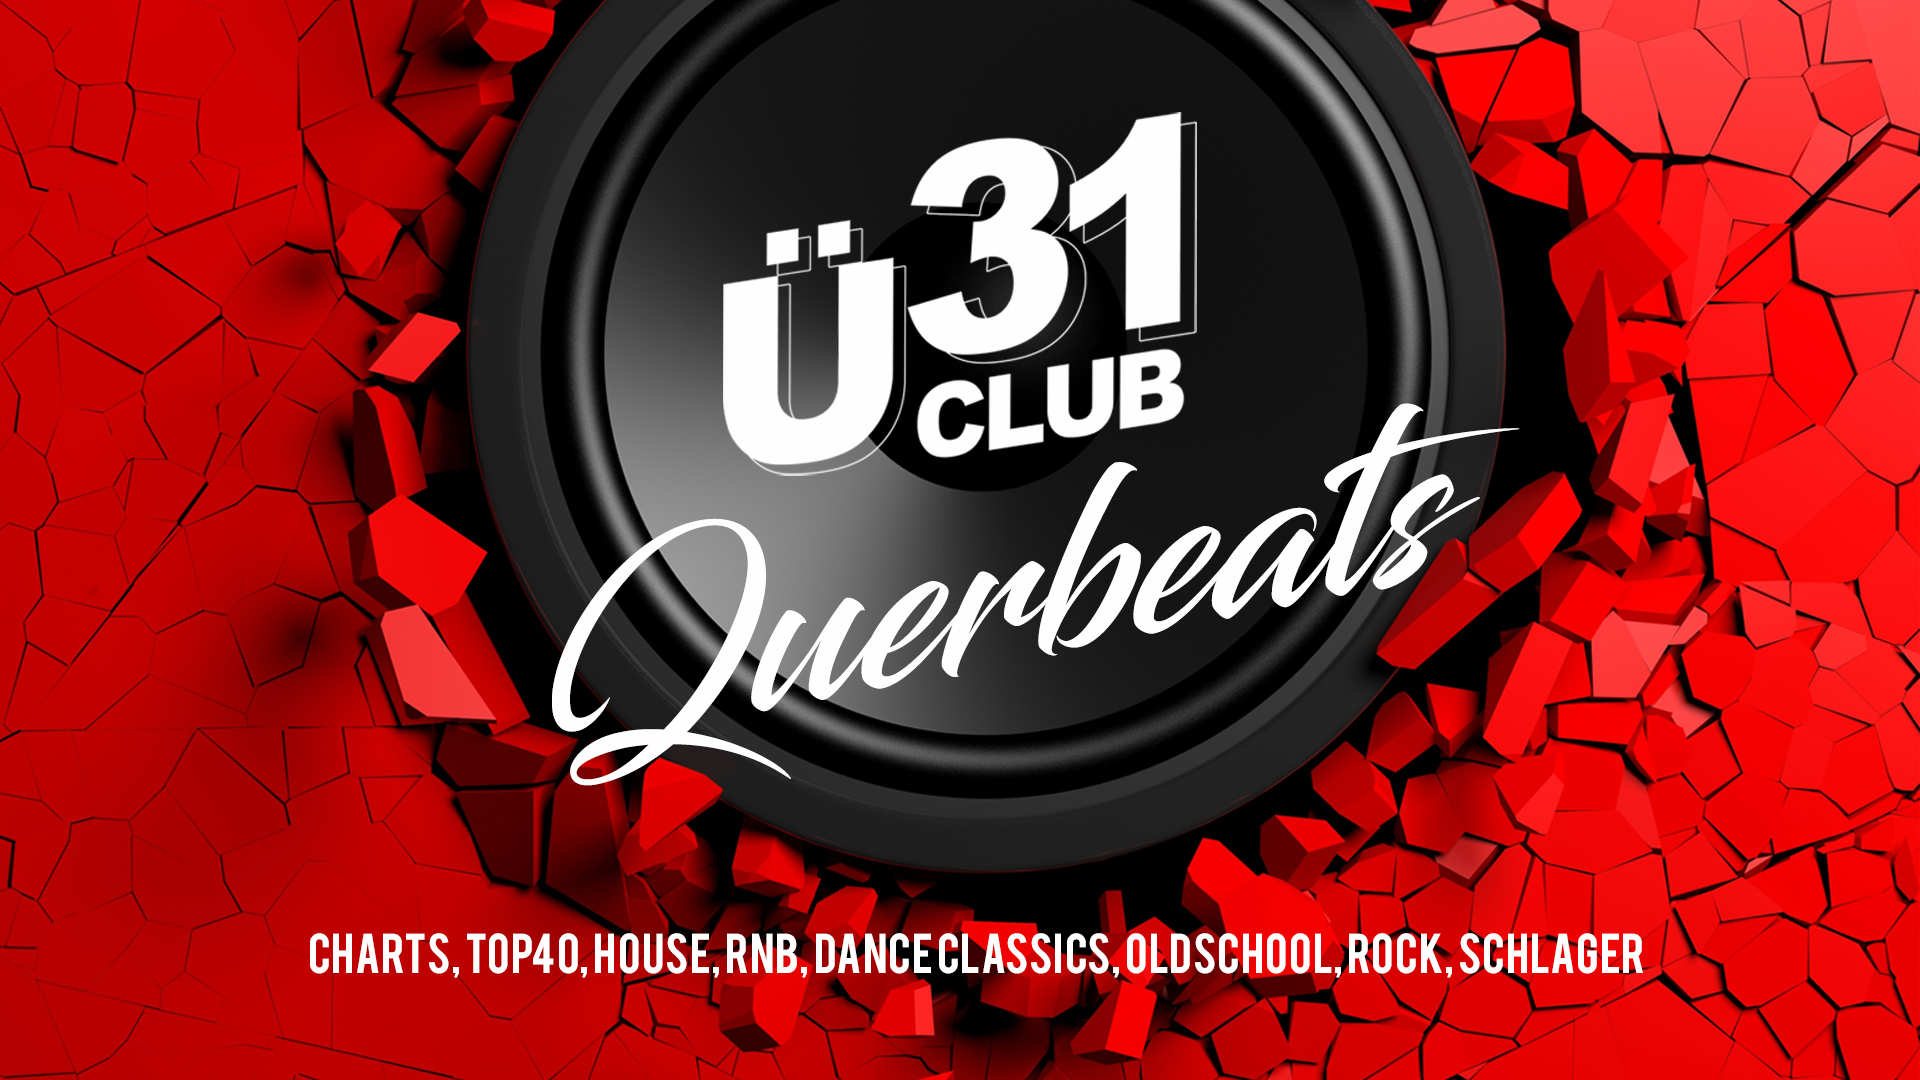 Ü31 Club Berlin - QUERBEATS